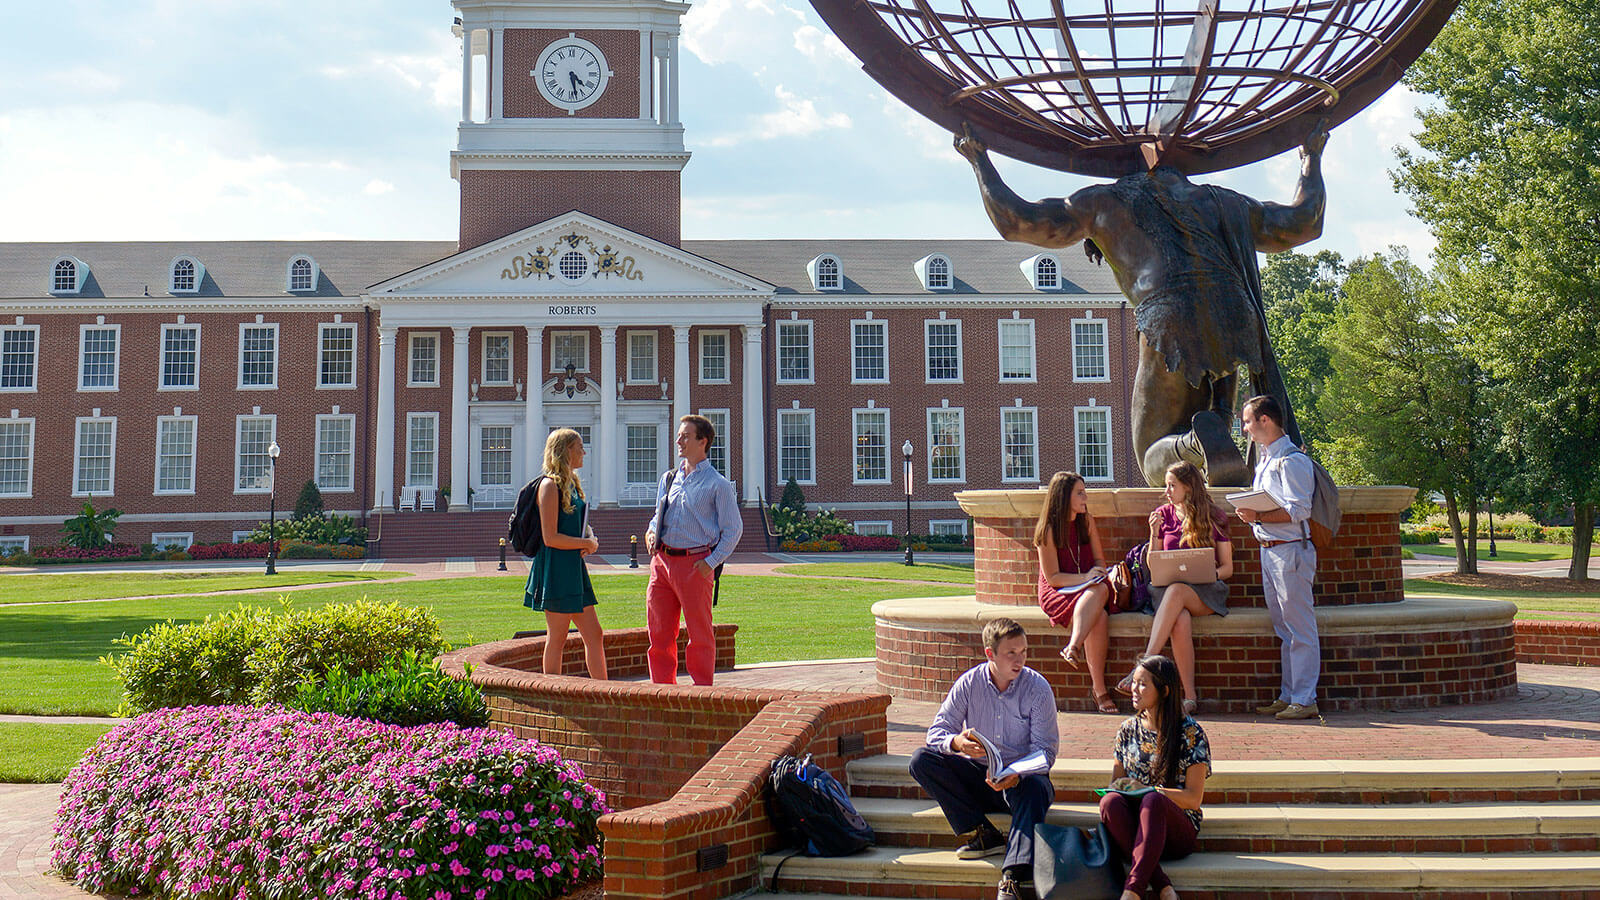 A image of the campus at High Point University.